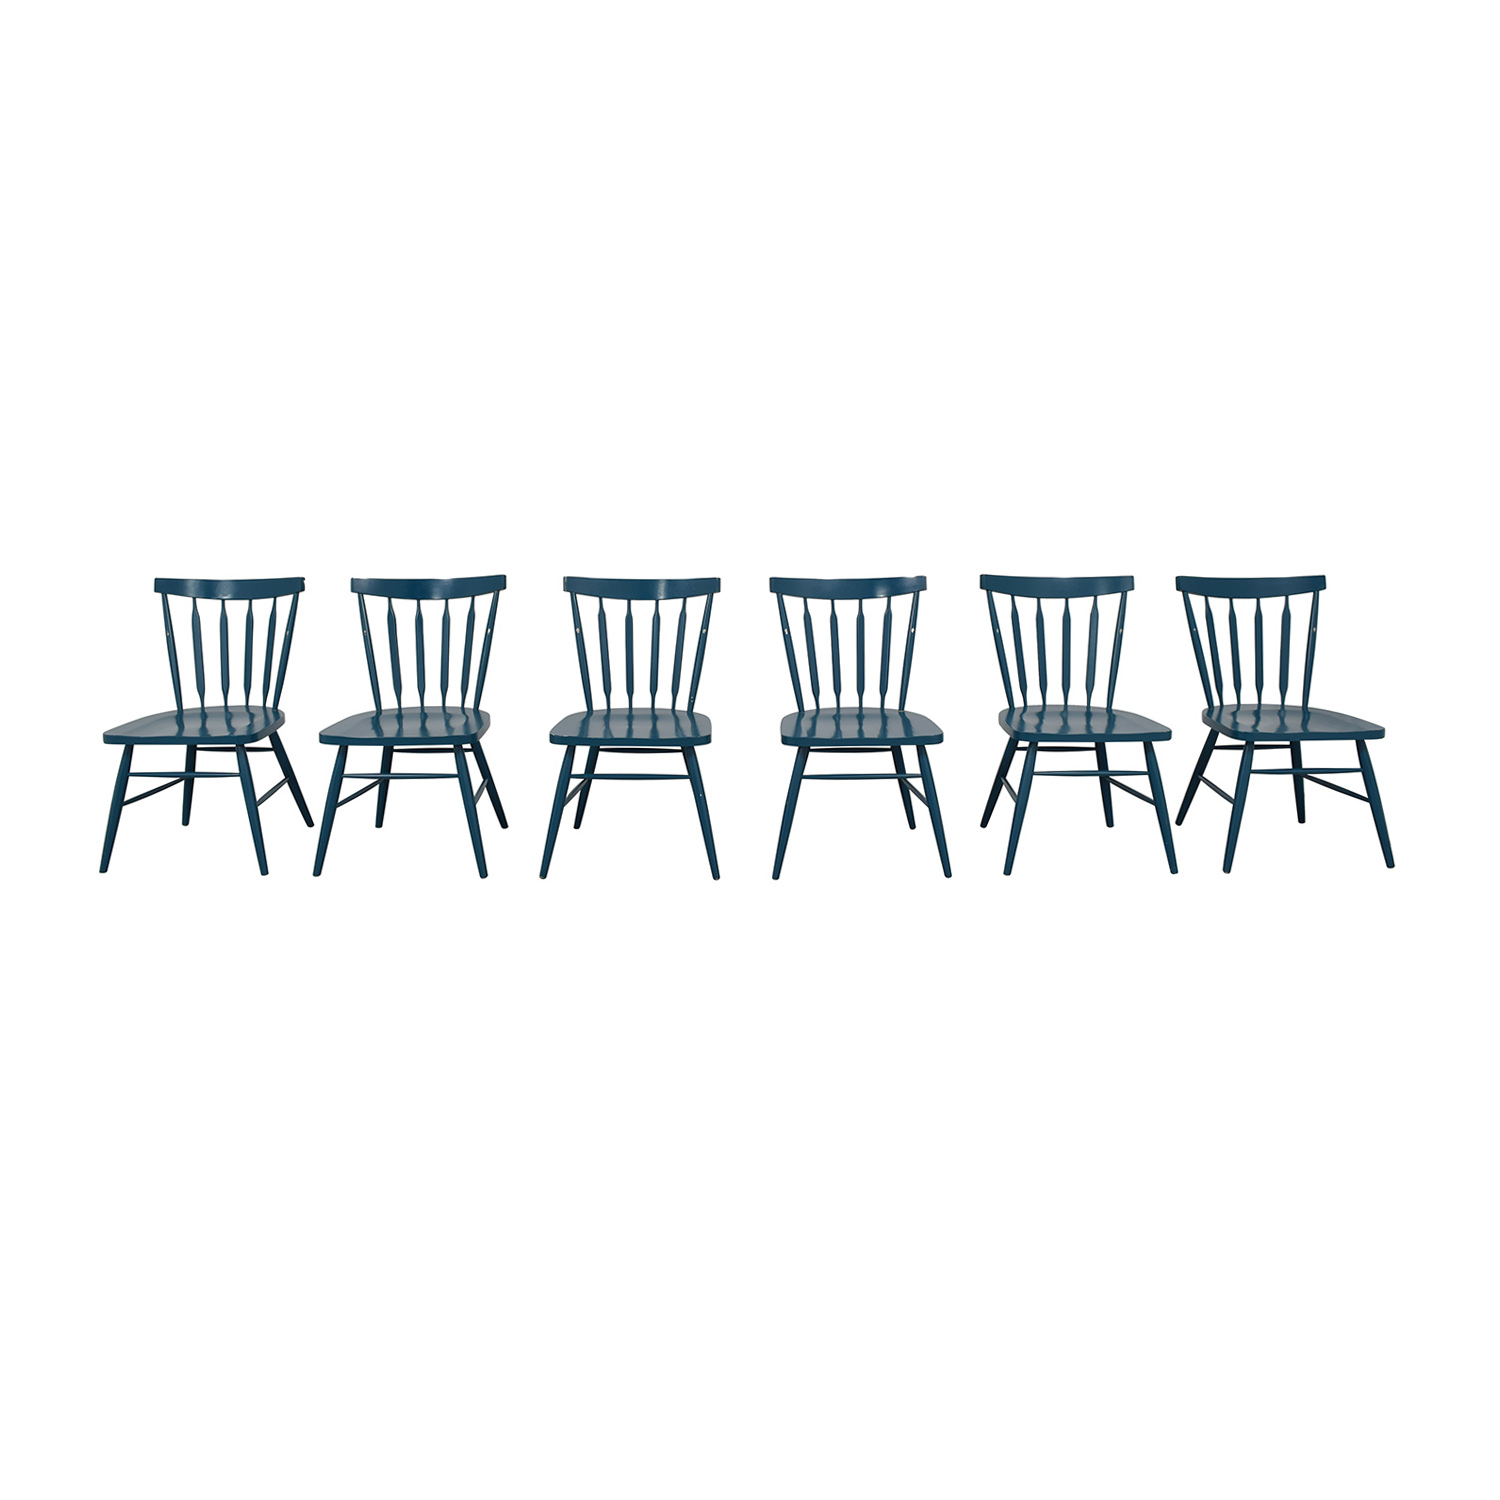 47% OFF - Crate & Barrel Crate & Barrel Kitchen Chairs / Chairs